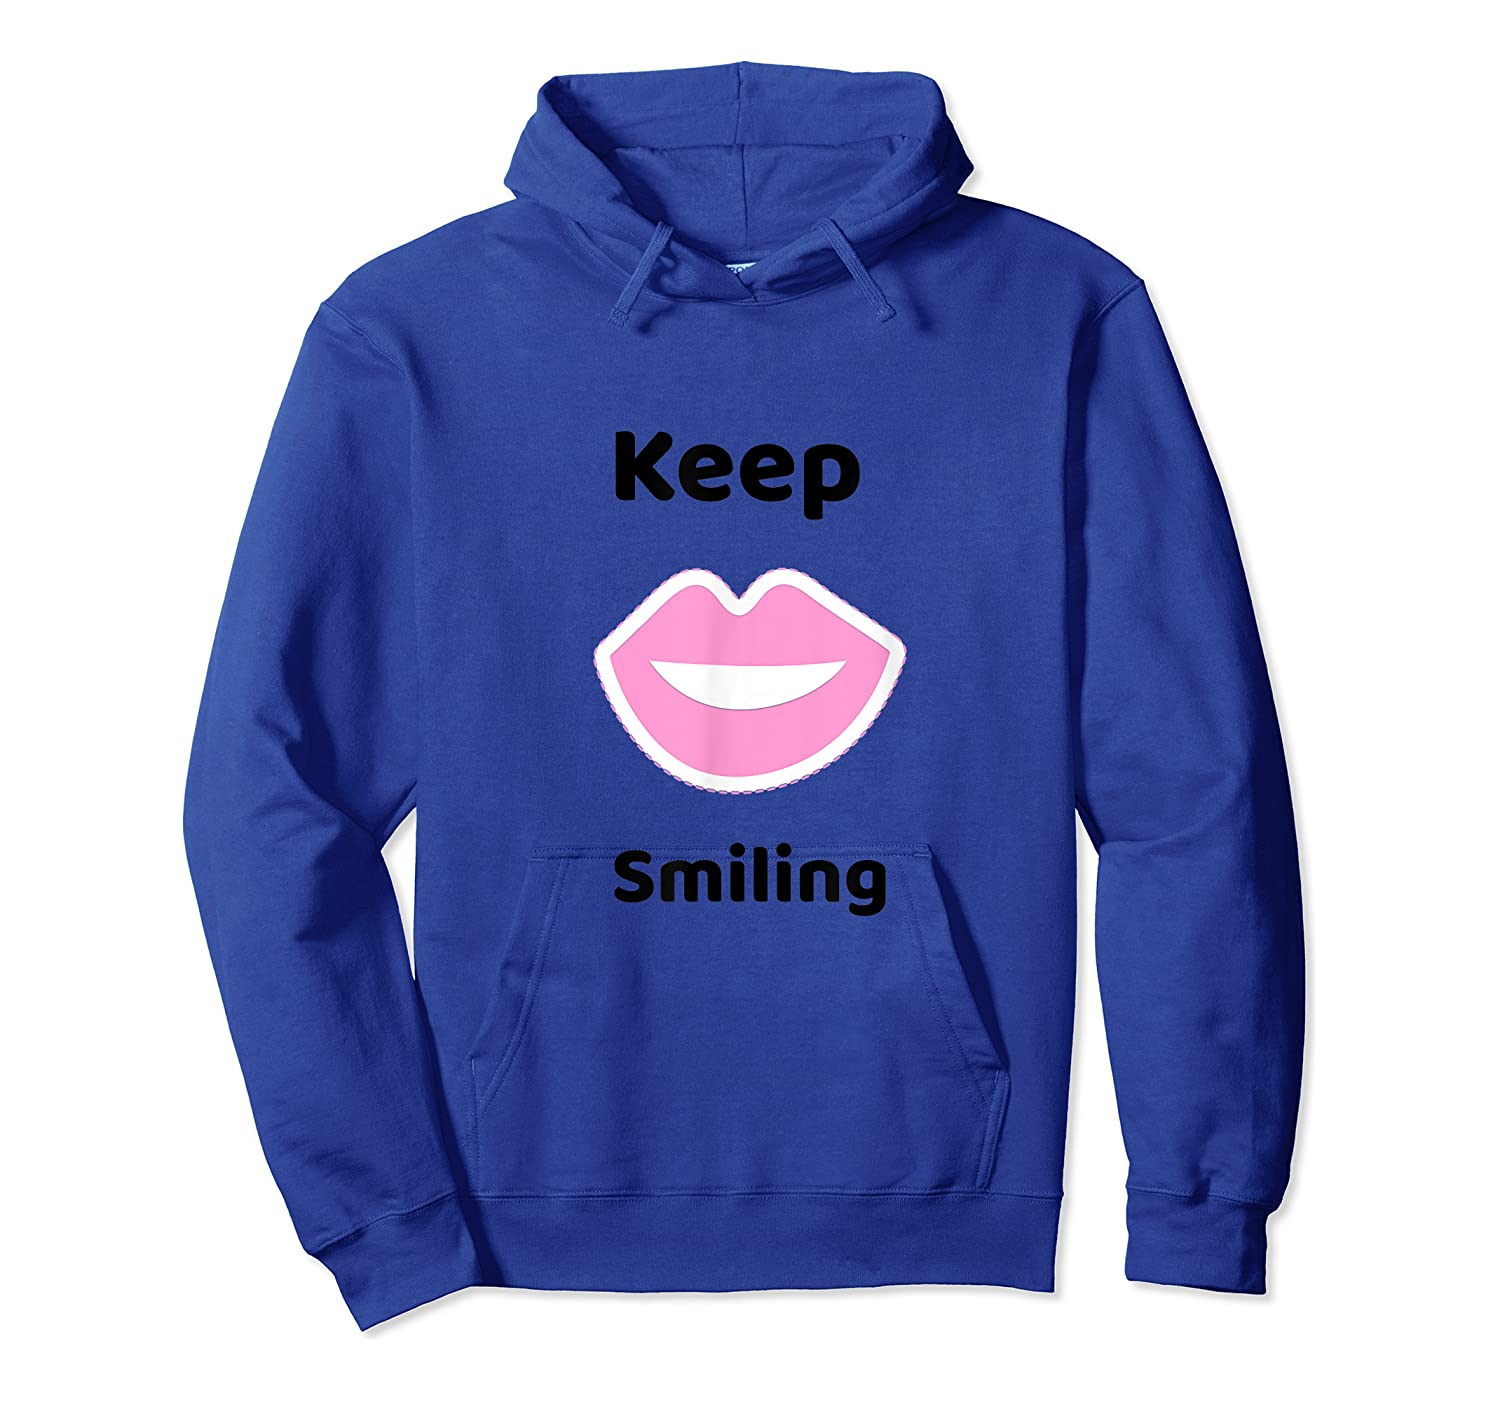 Keep Smiling Positive Thoughts Shirts Unisex Pullover Hoodie